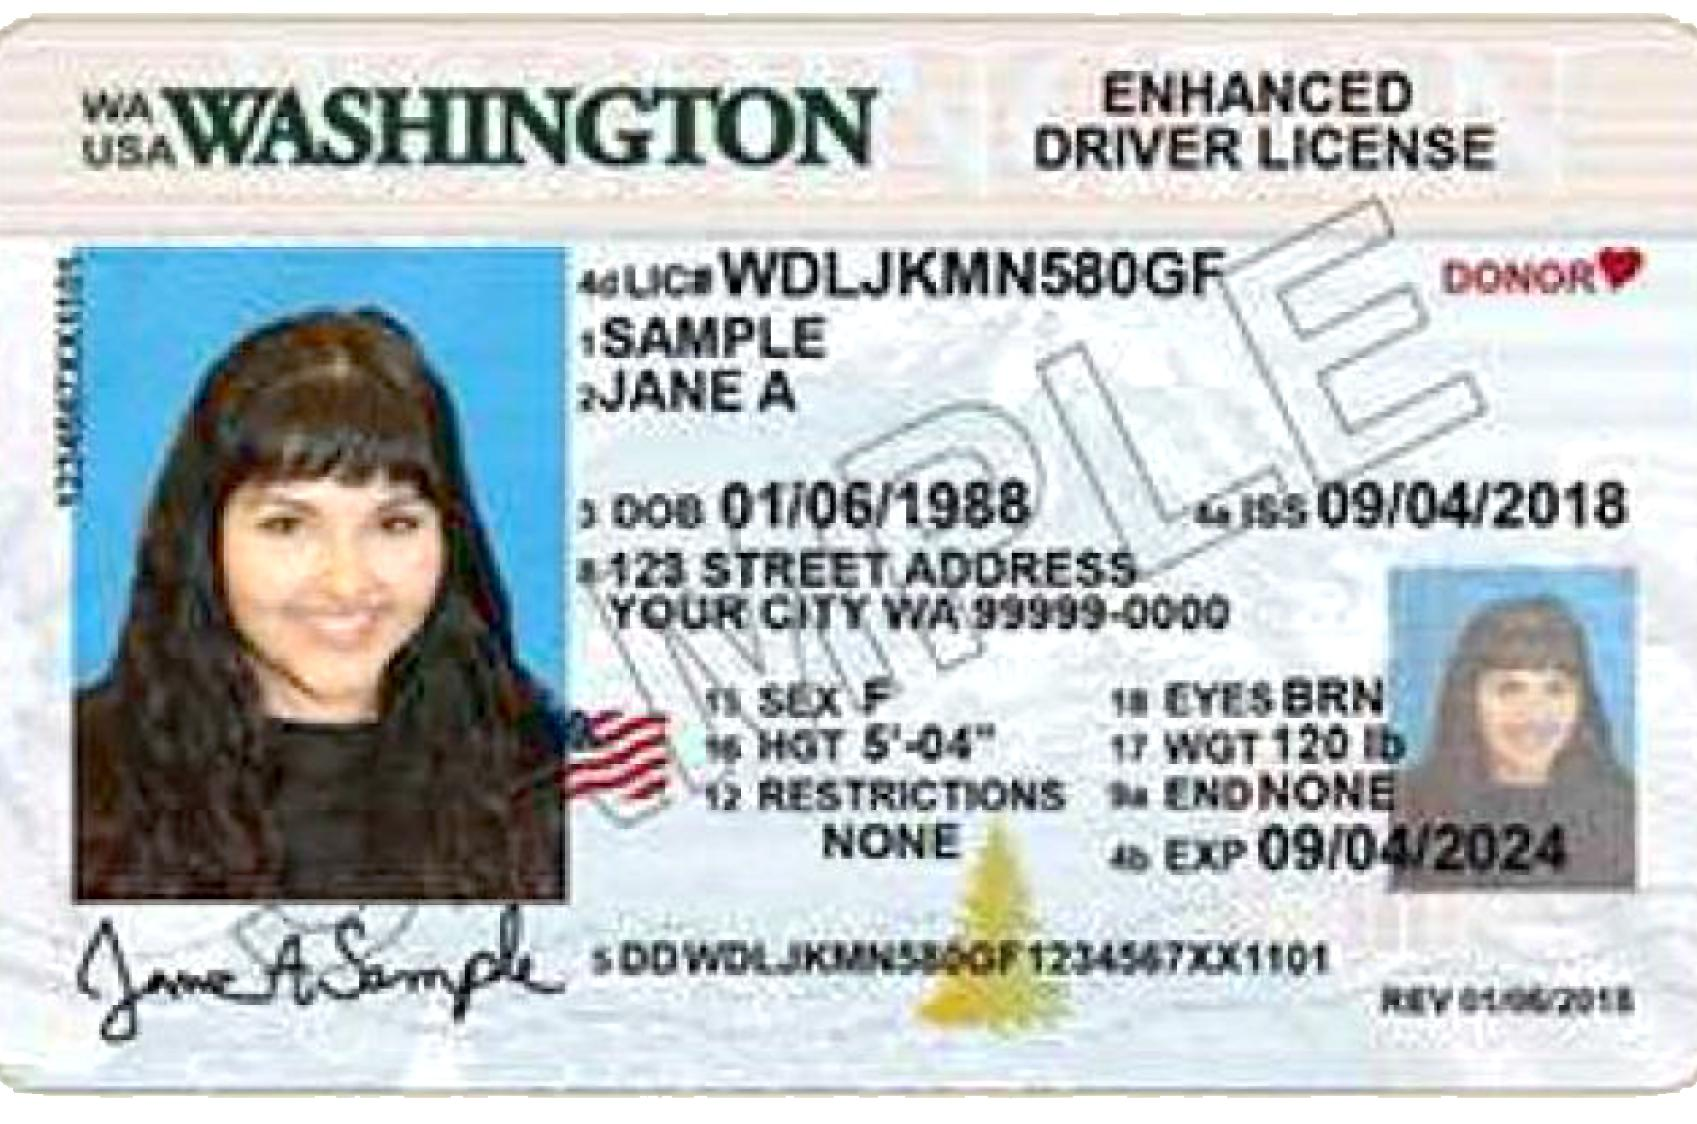 Washington The On To Cards July Id Spokesman-review Driver's Licenses 1 Change